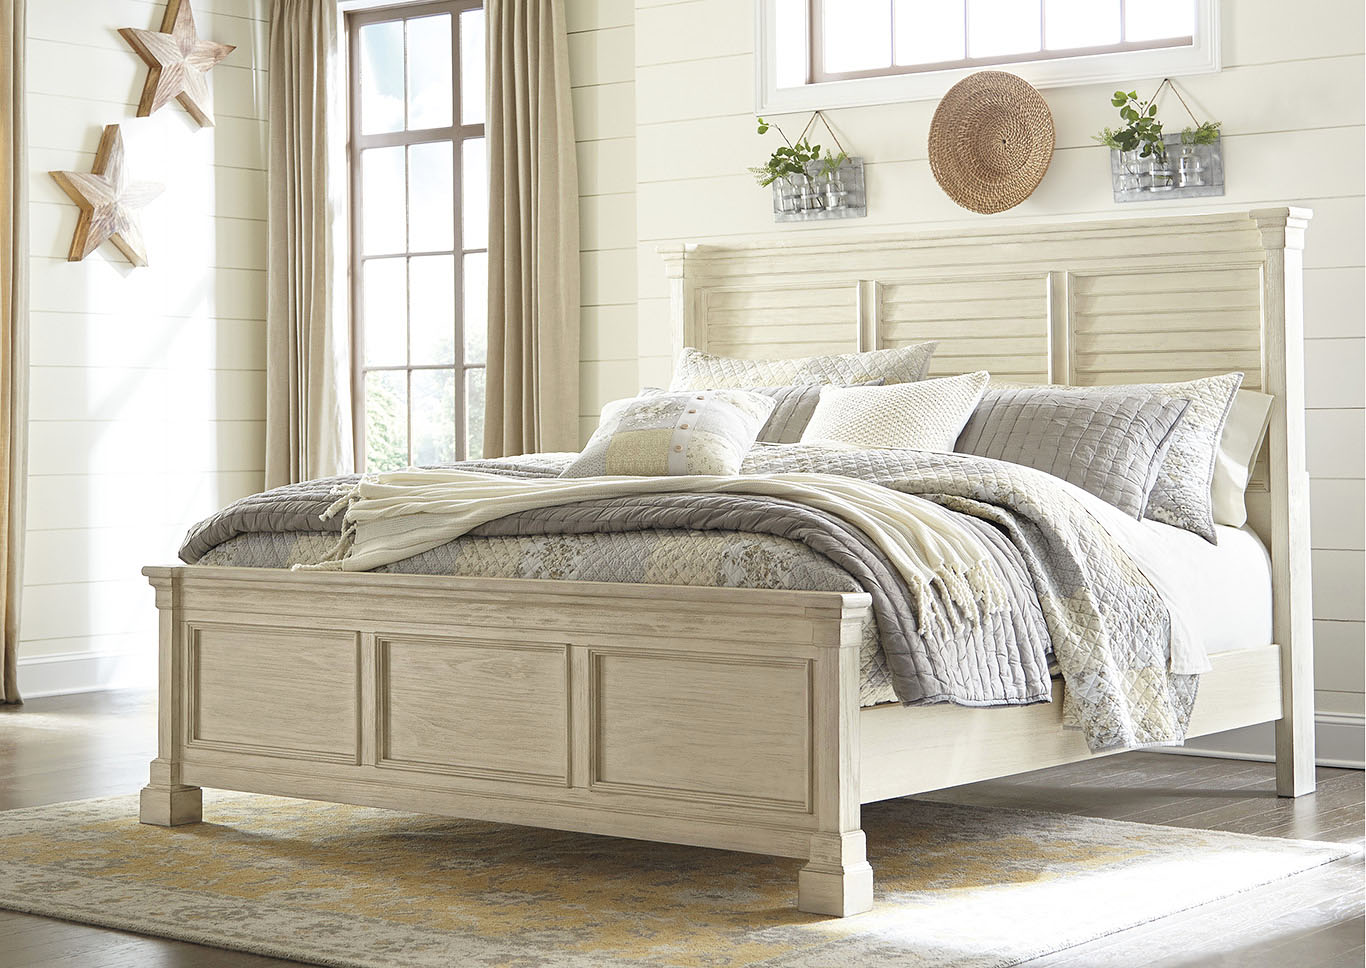 Bolanburg White California King Louvered Bed,Signature Design By Ashley